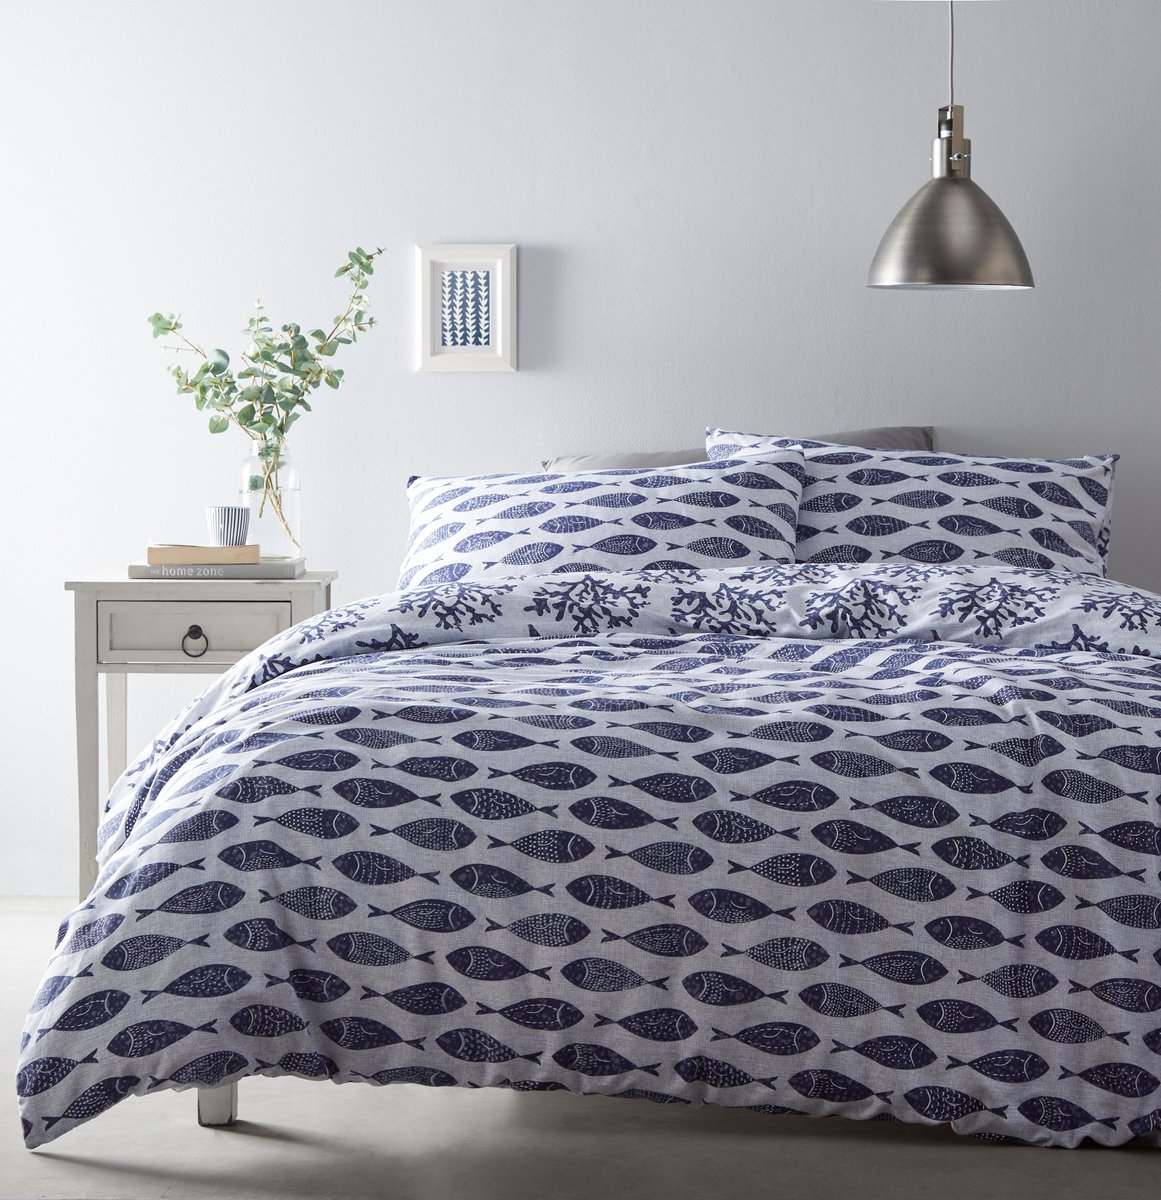 #COMPETITIONTIME! Simply retweet, like and follow us for a chance to win this stunning reversible Cove Double Duvet Set! One side is deep sea blue fish and the other is exploring coral. The competition ends at the end of October so enter now! #DuvetSet #Ocean #FishBedding<br>http://pic.twitter.com/TOGJR3hiNT